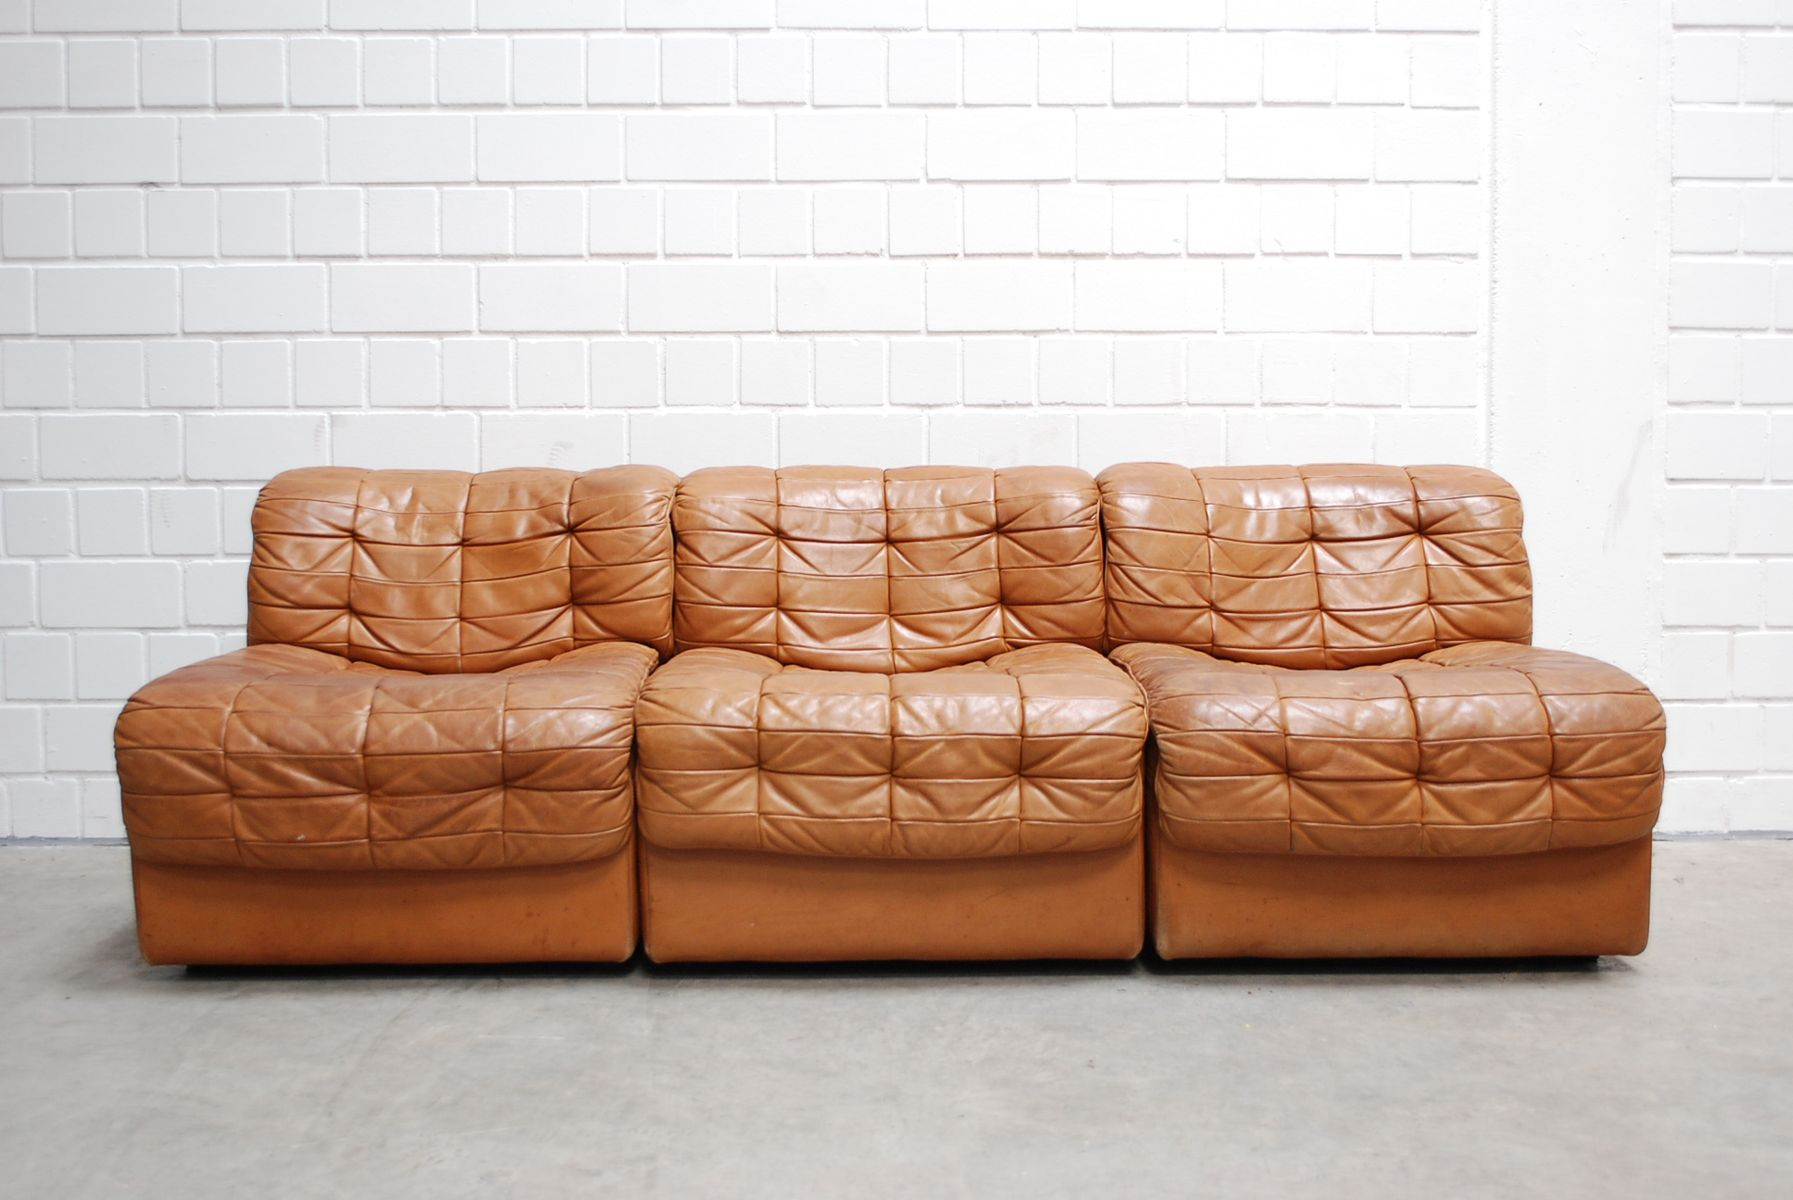 Swiss modular ds 11 cognac leather sofa from de sede 1985 for Sofa gebraucht